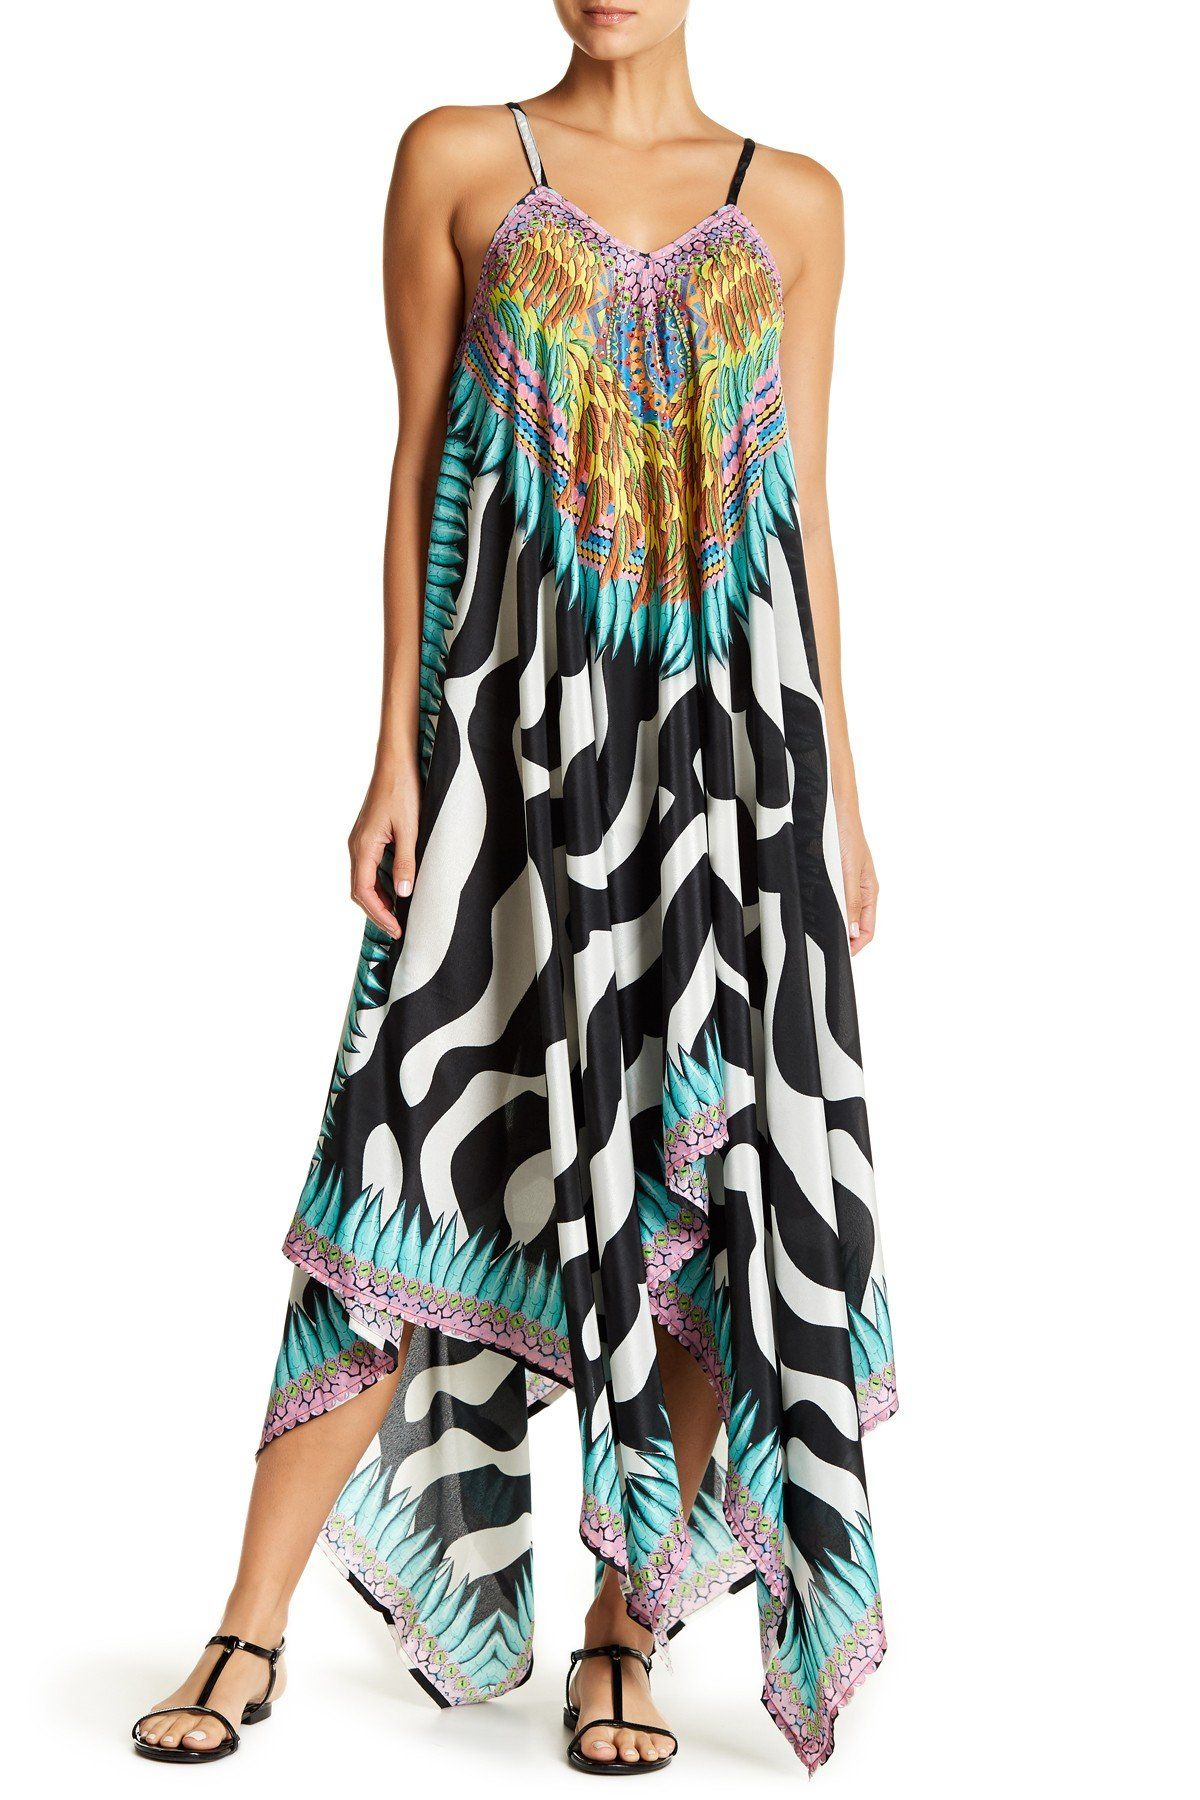 a1827113c1 Sheer Hi-Lo Multi-Colored Beach Cover Up Dress | Products | Dresses ...